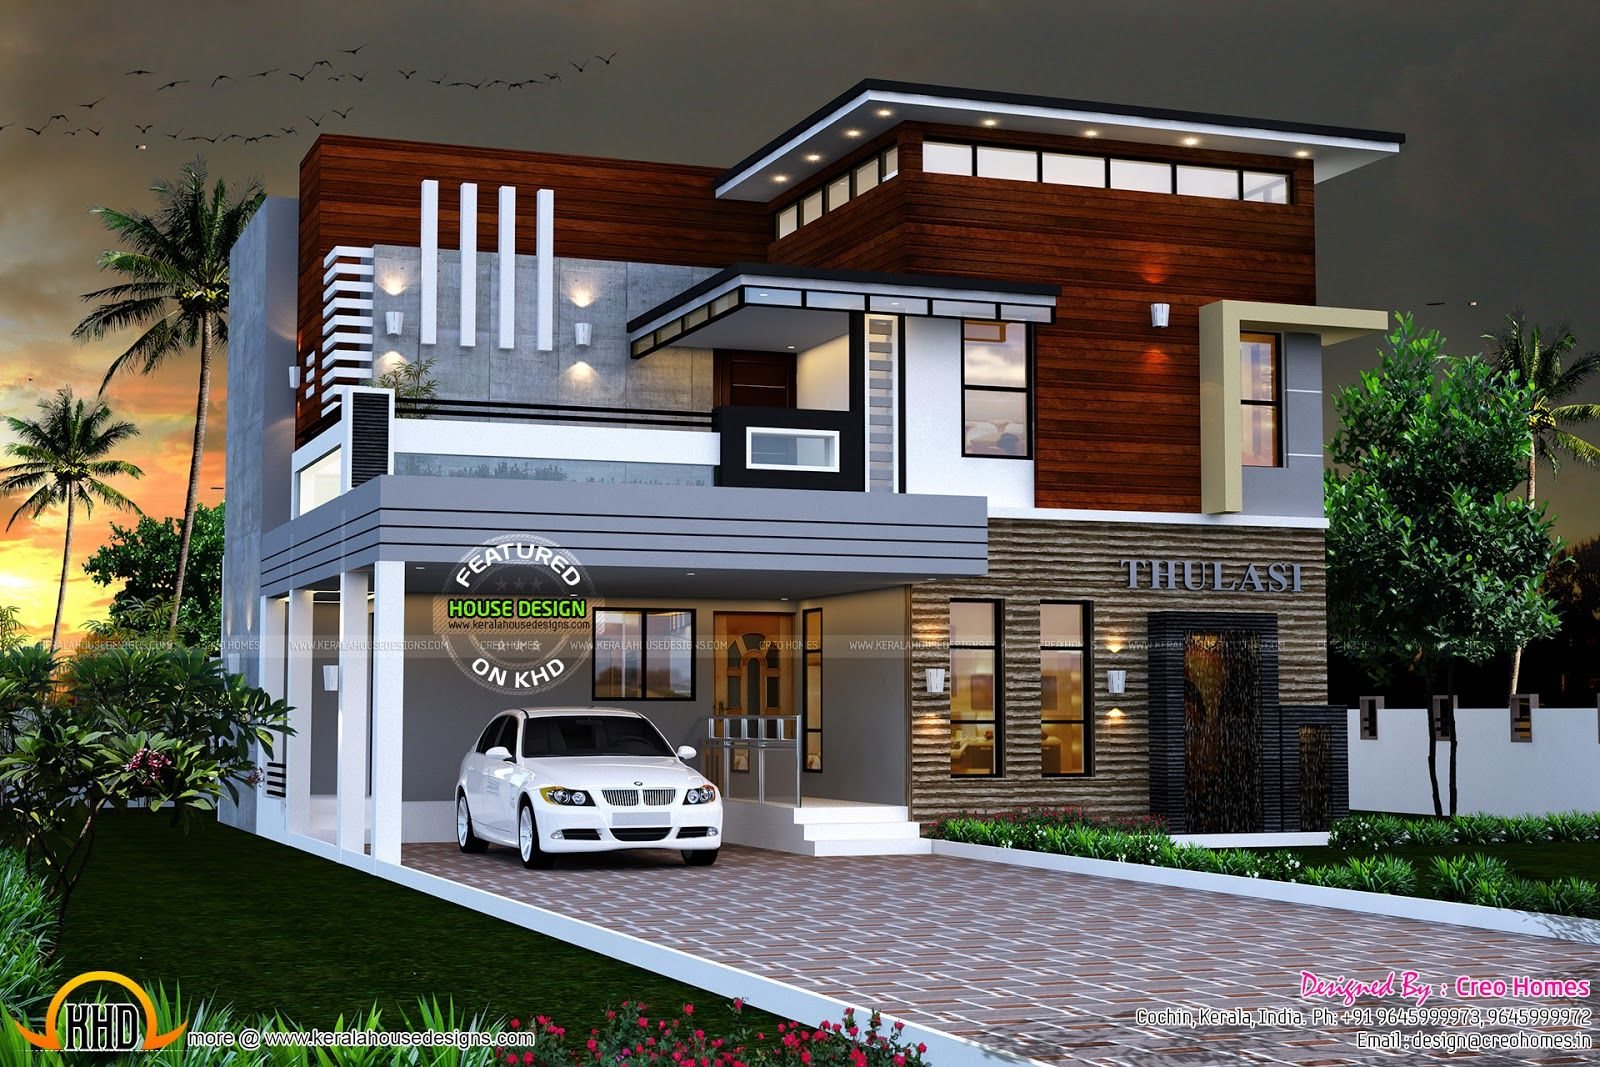 Eterior design modern small house architecture building plan home design kerala house plans home - Home construction designs ...